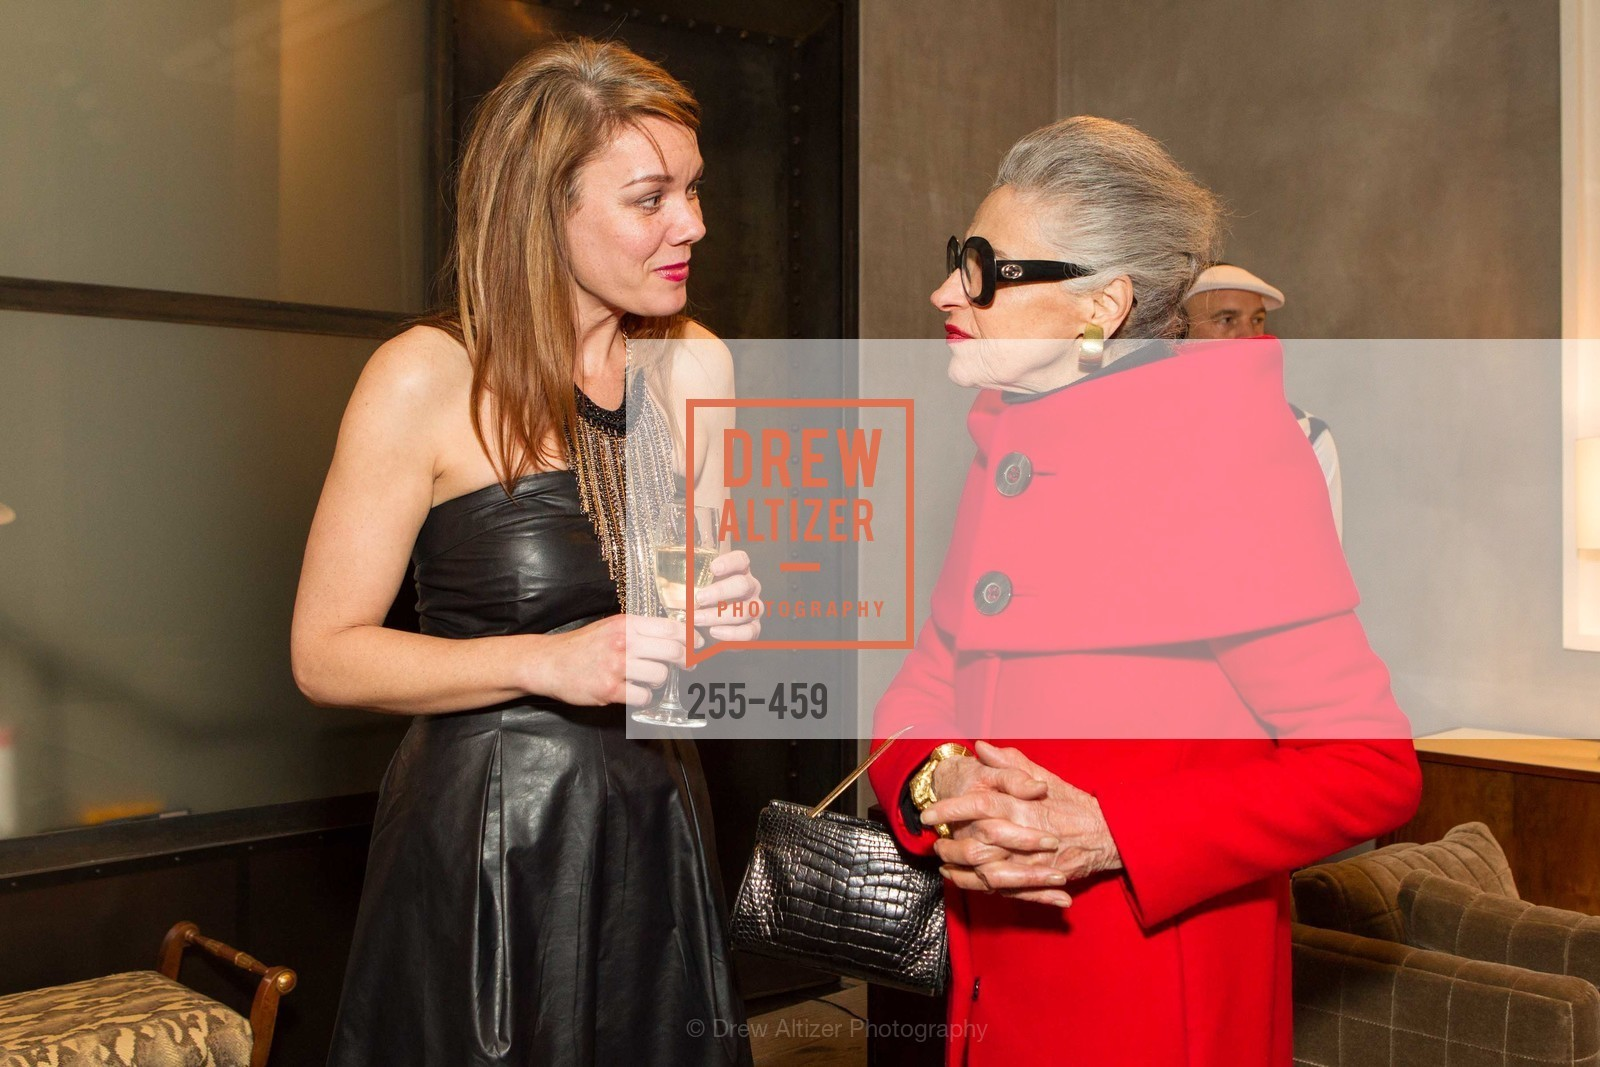 Tiffany Emerson, Joy Bianchi, 2014 SAN FRANCISCO BALLET OPENING NIGHT GALA Patron and Sponsor Reception, US. US, January 14th, 2014,Drew Altizer, Drew Altizer Photography, full-service agency, private events, San Francisco photographer, photographer california